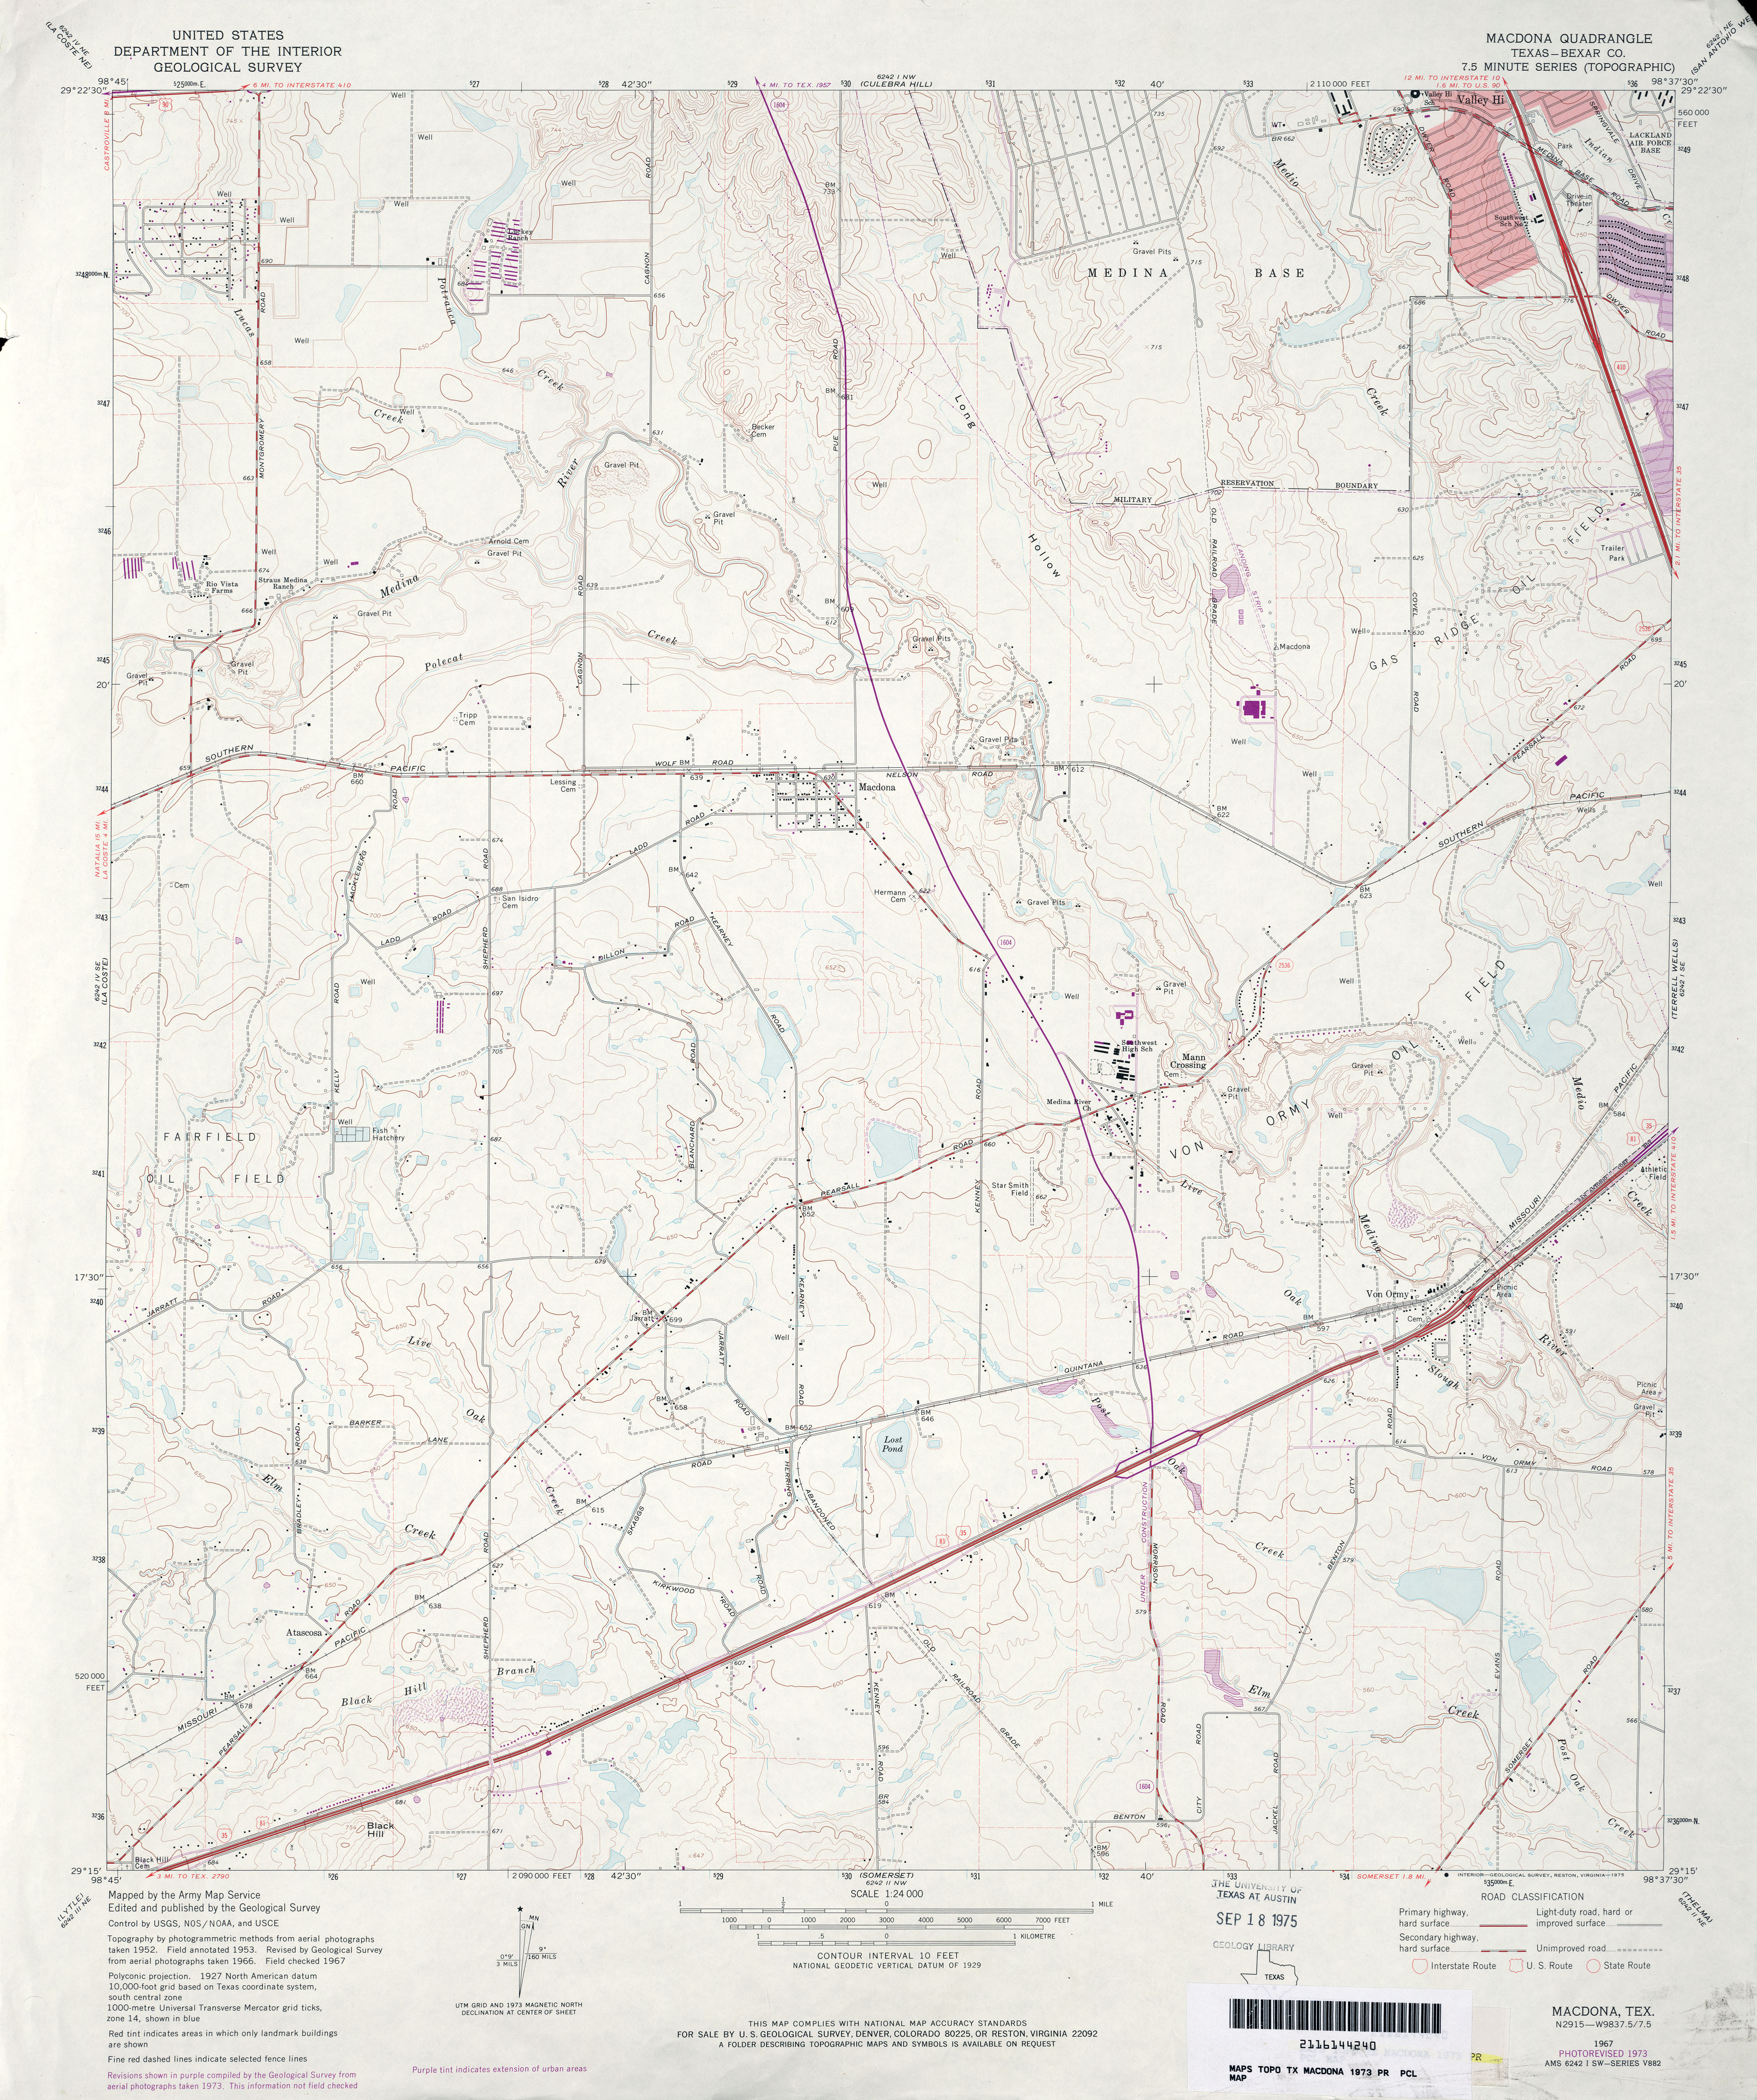 Texas Topographic Maps - Perry-Castañeda Map Collection - Ut Library - Leon County Texas Plat Maps